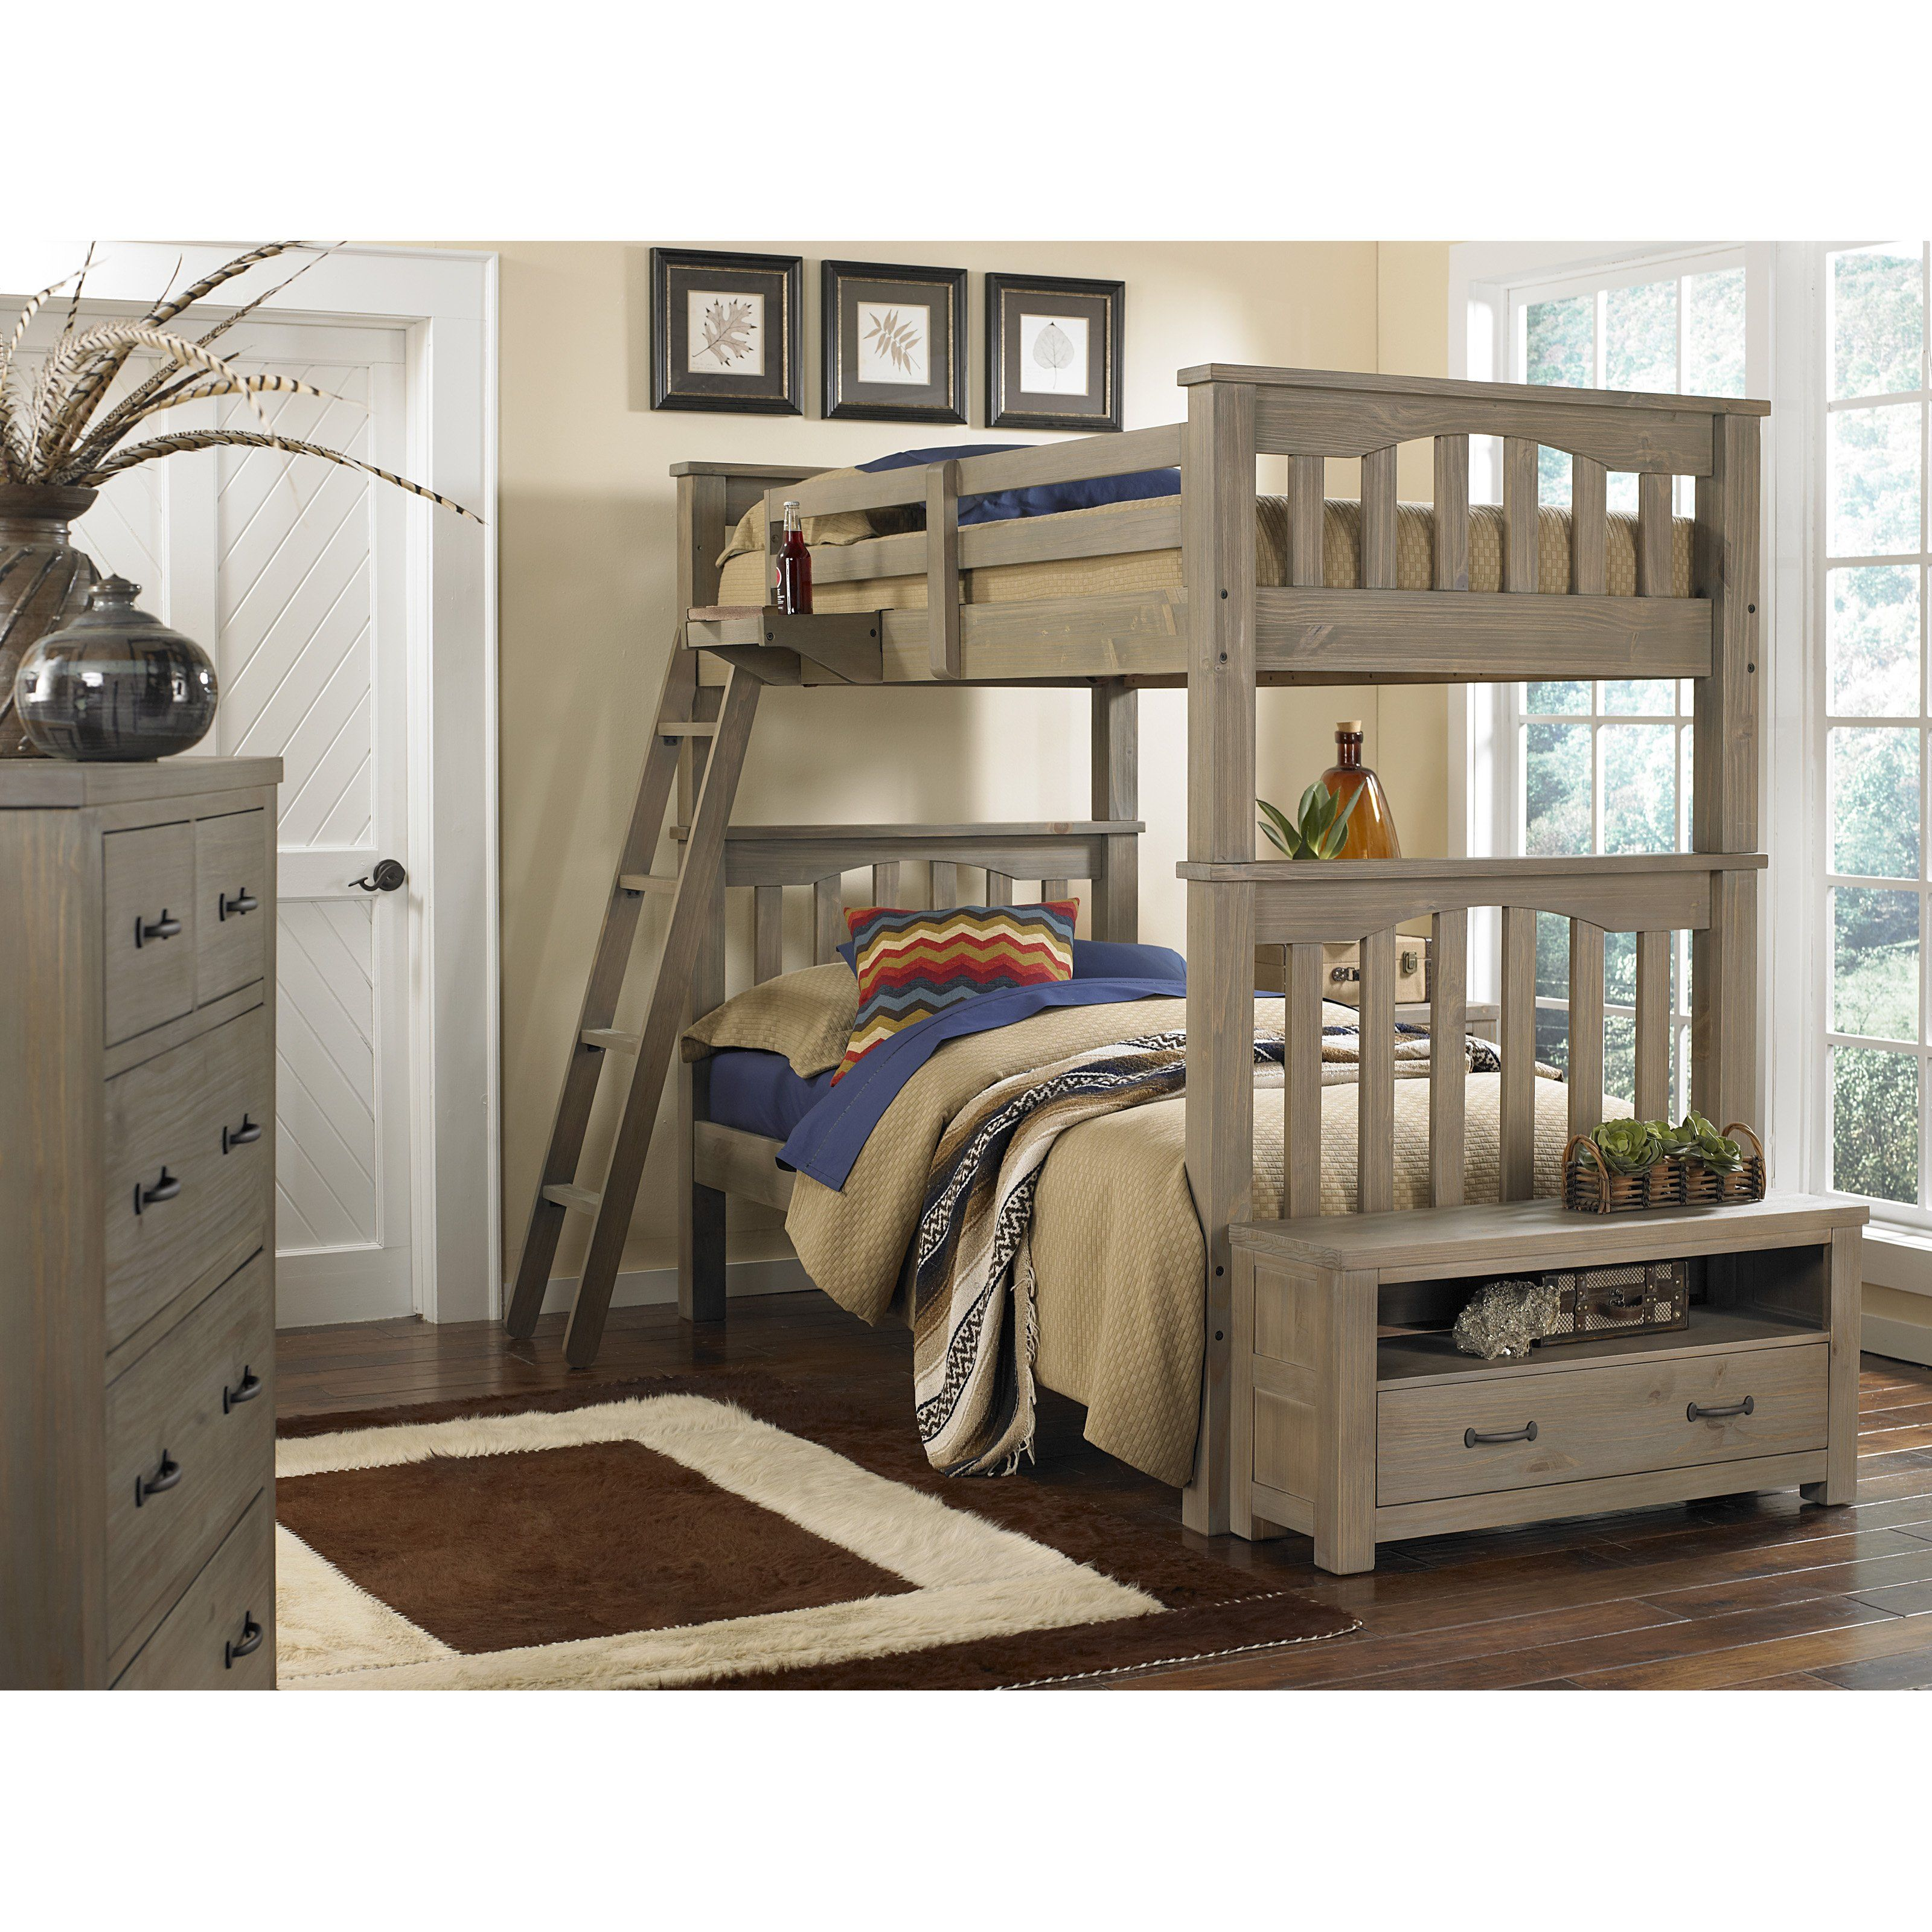 Boys' twin loft bed with storage steps  Have to have it Highlands Harper Twin over Twin Bunk Bed